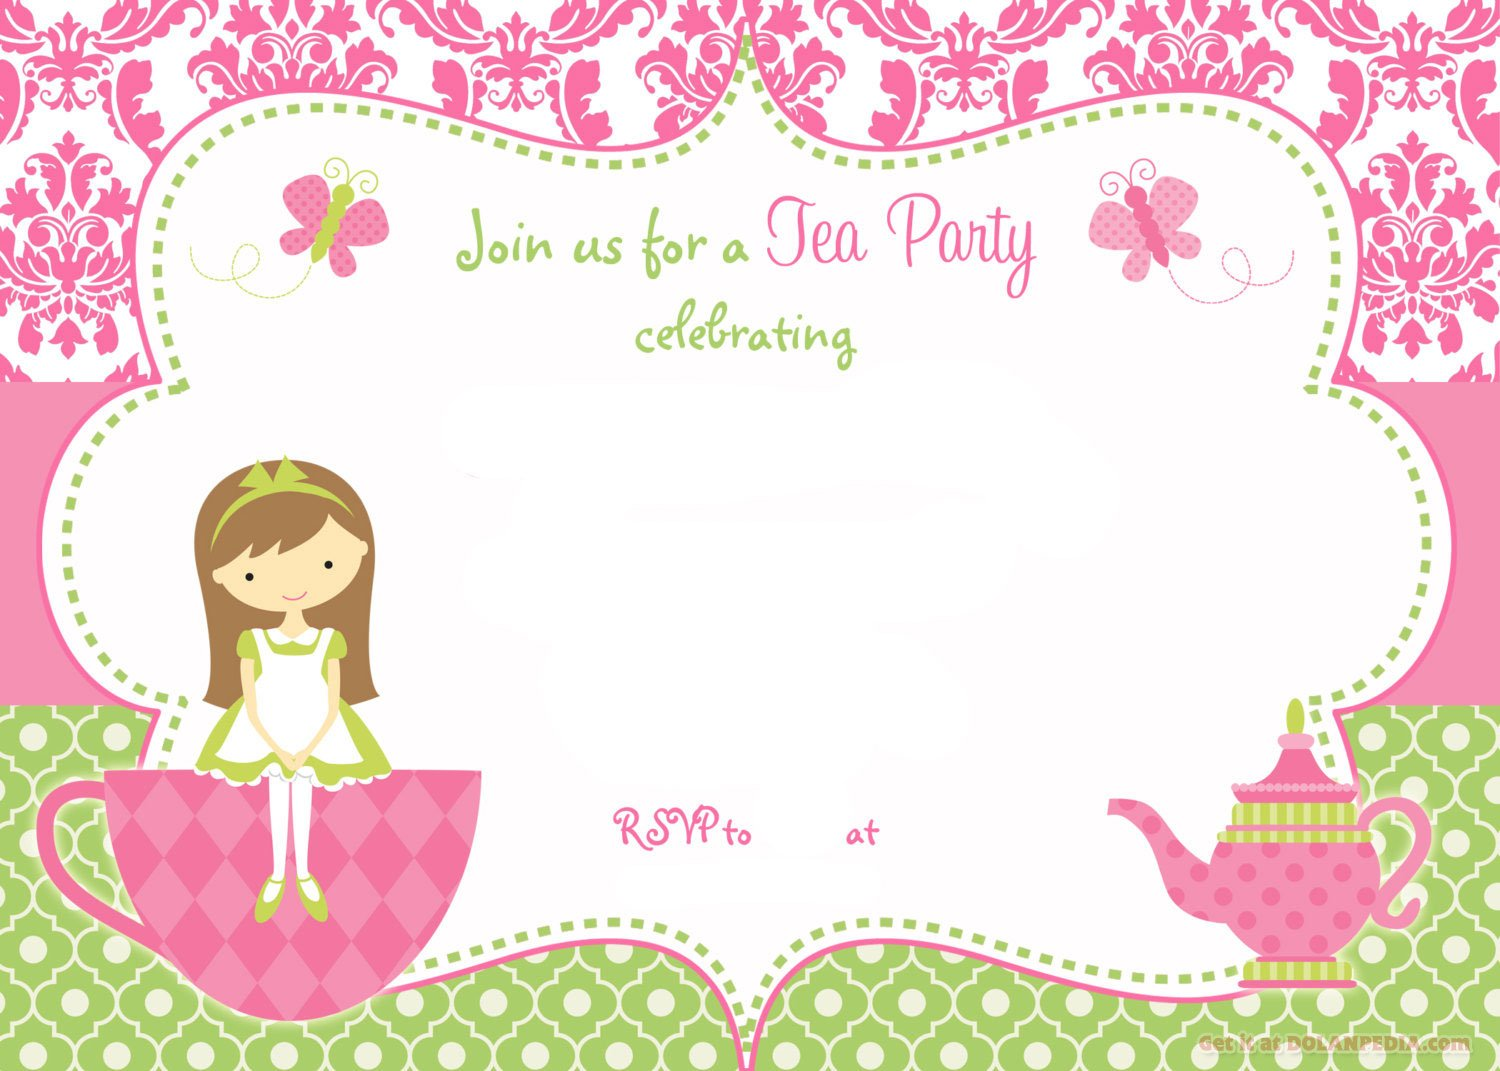 Tea party invites templates free tea party invites templates free tea party invites templates free stopboris Gallery